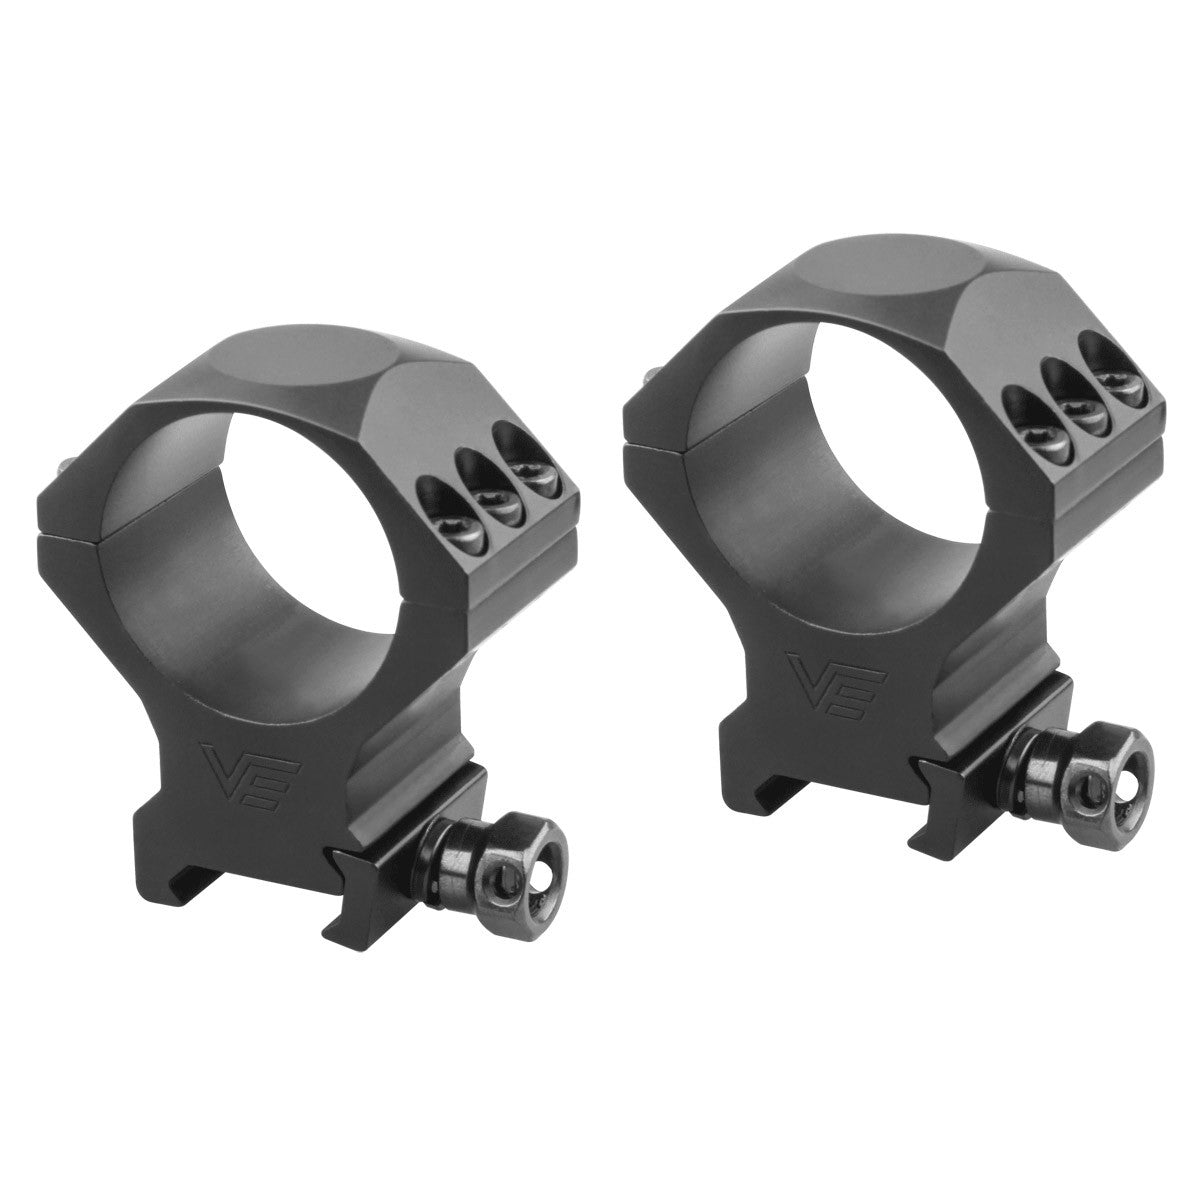 34mm X-ACCU Scope Ring Medium